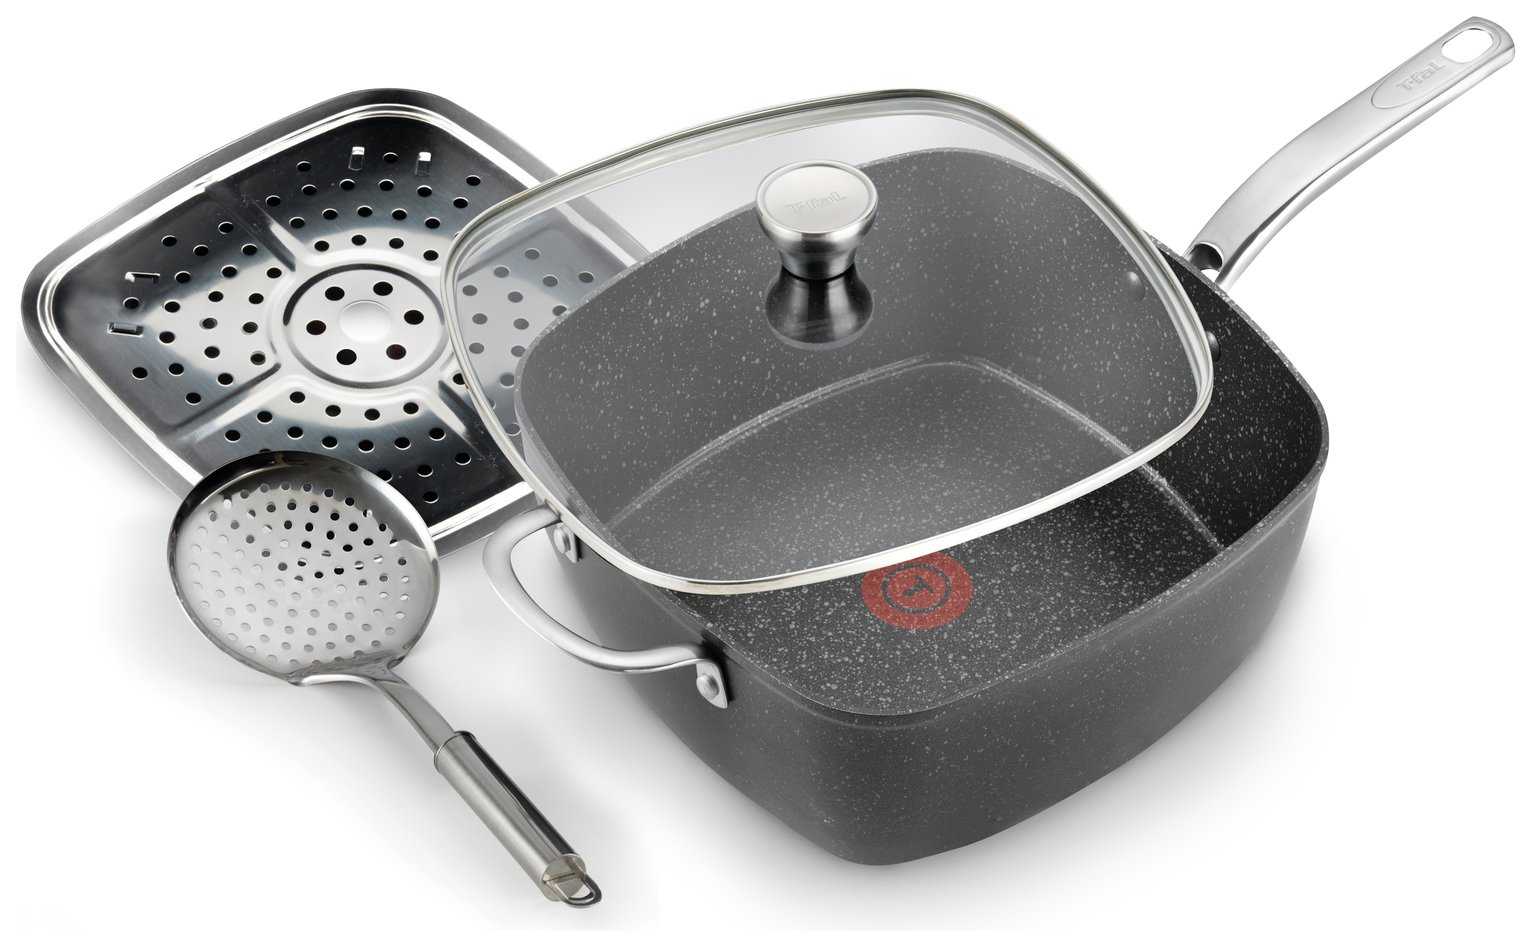 Tefal Titanium Excel All-in-One Square Pan and Glass Lid